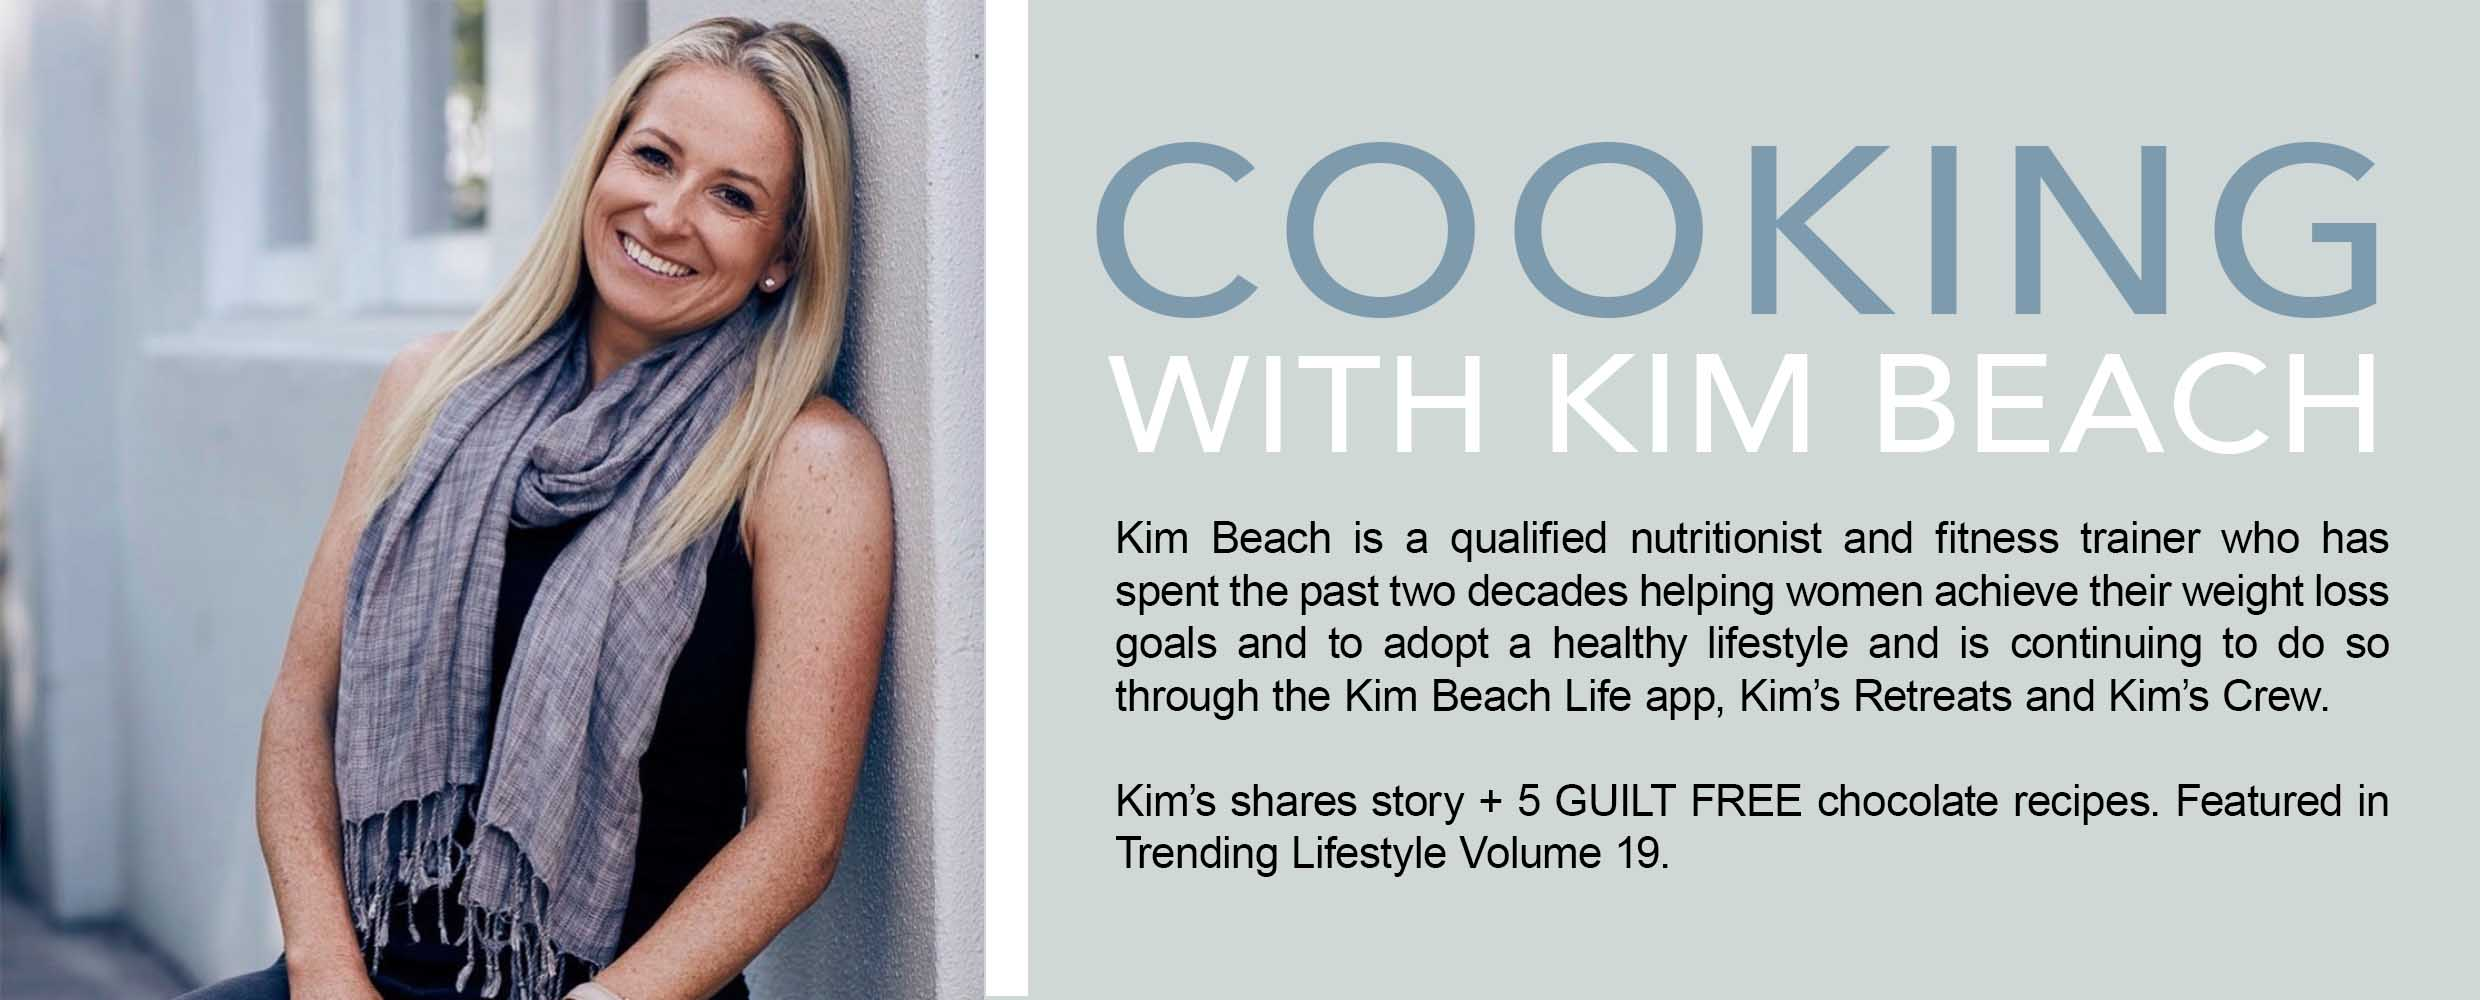 AS-SEEN-IN-HOME-LIVING - COOKING-WITH-KIM-BEACH-10